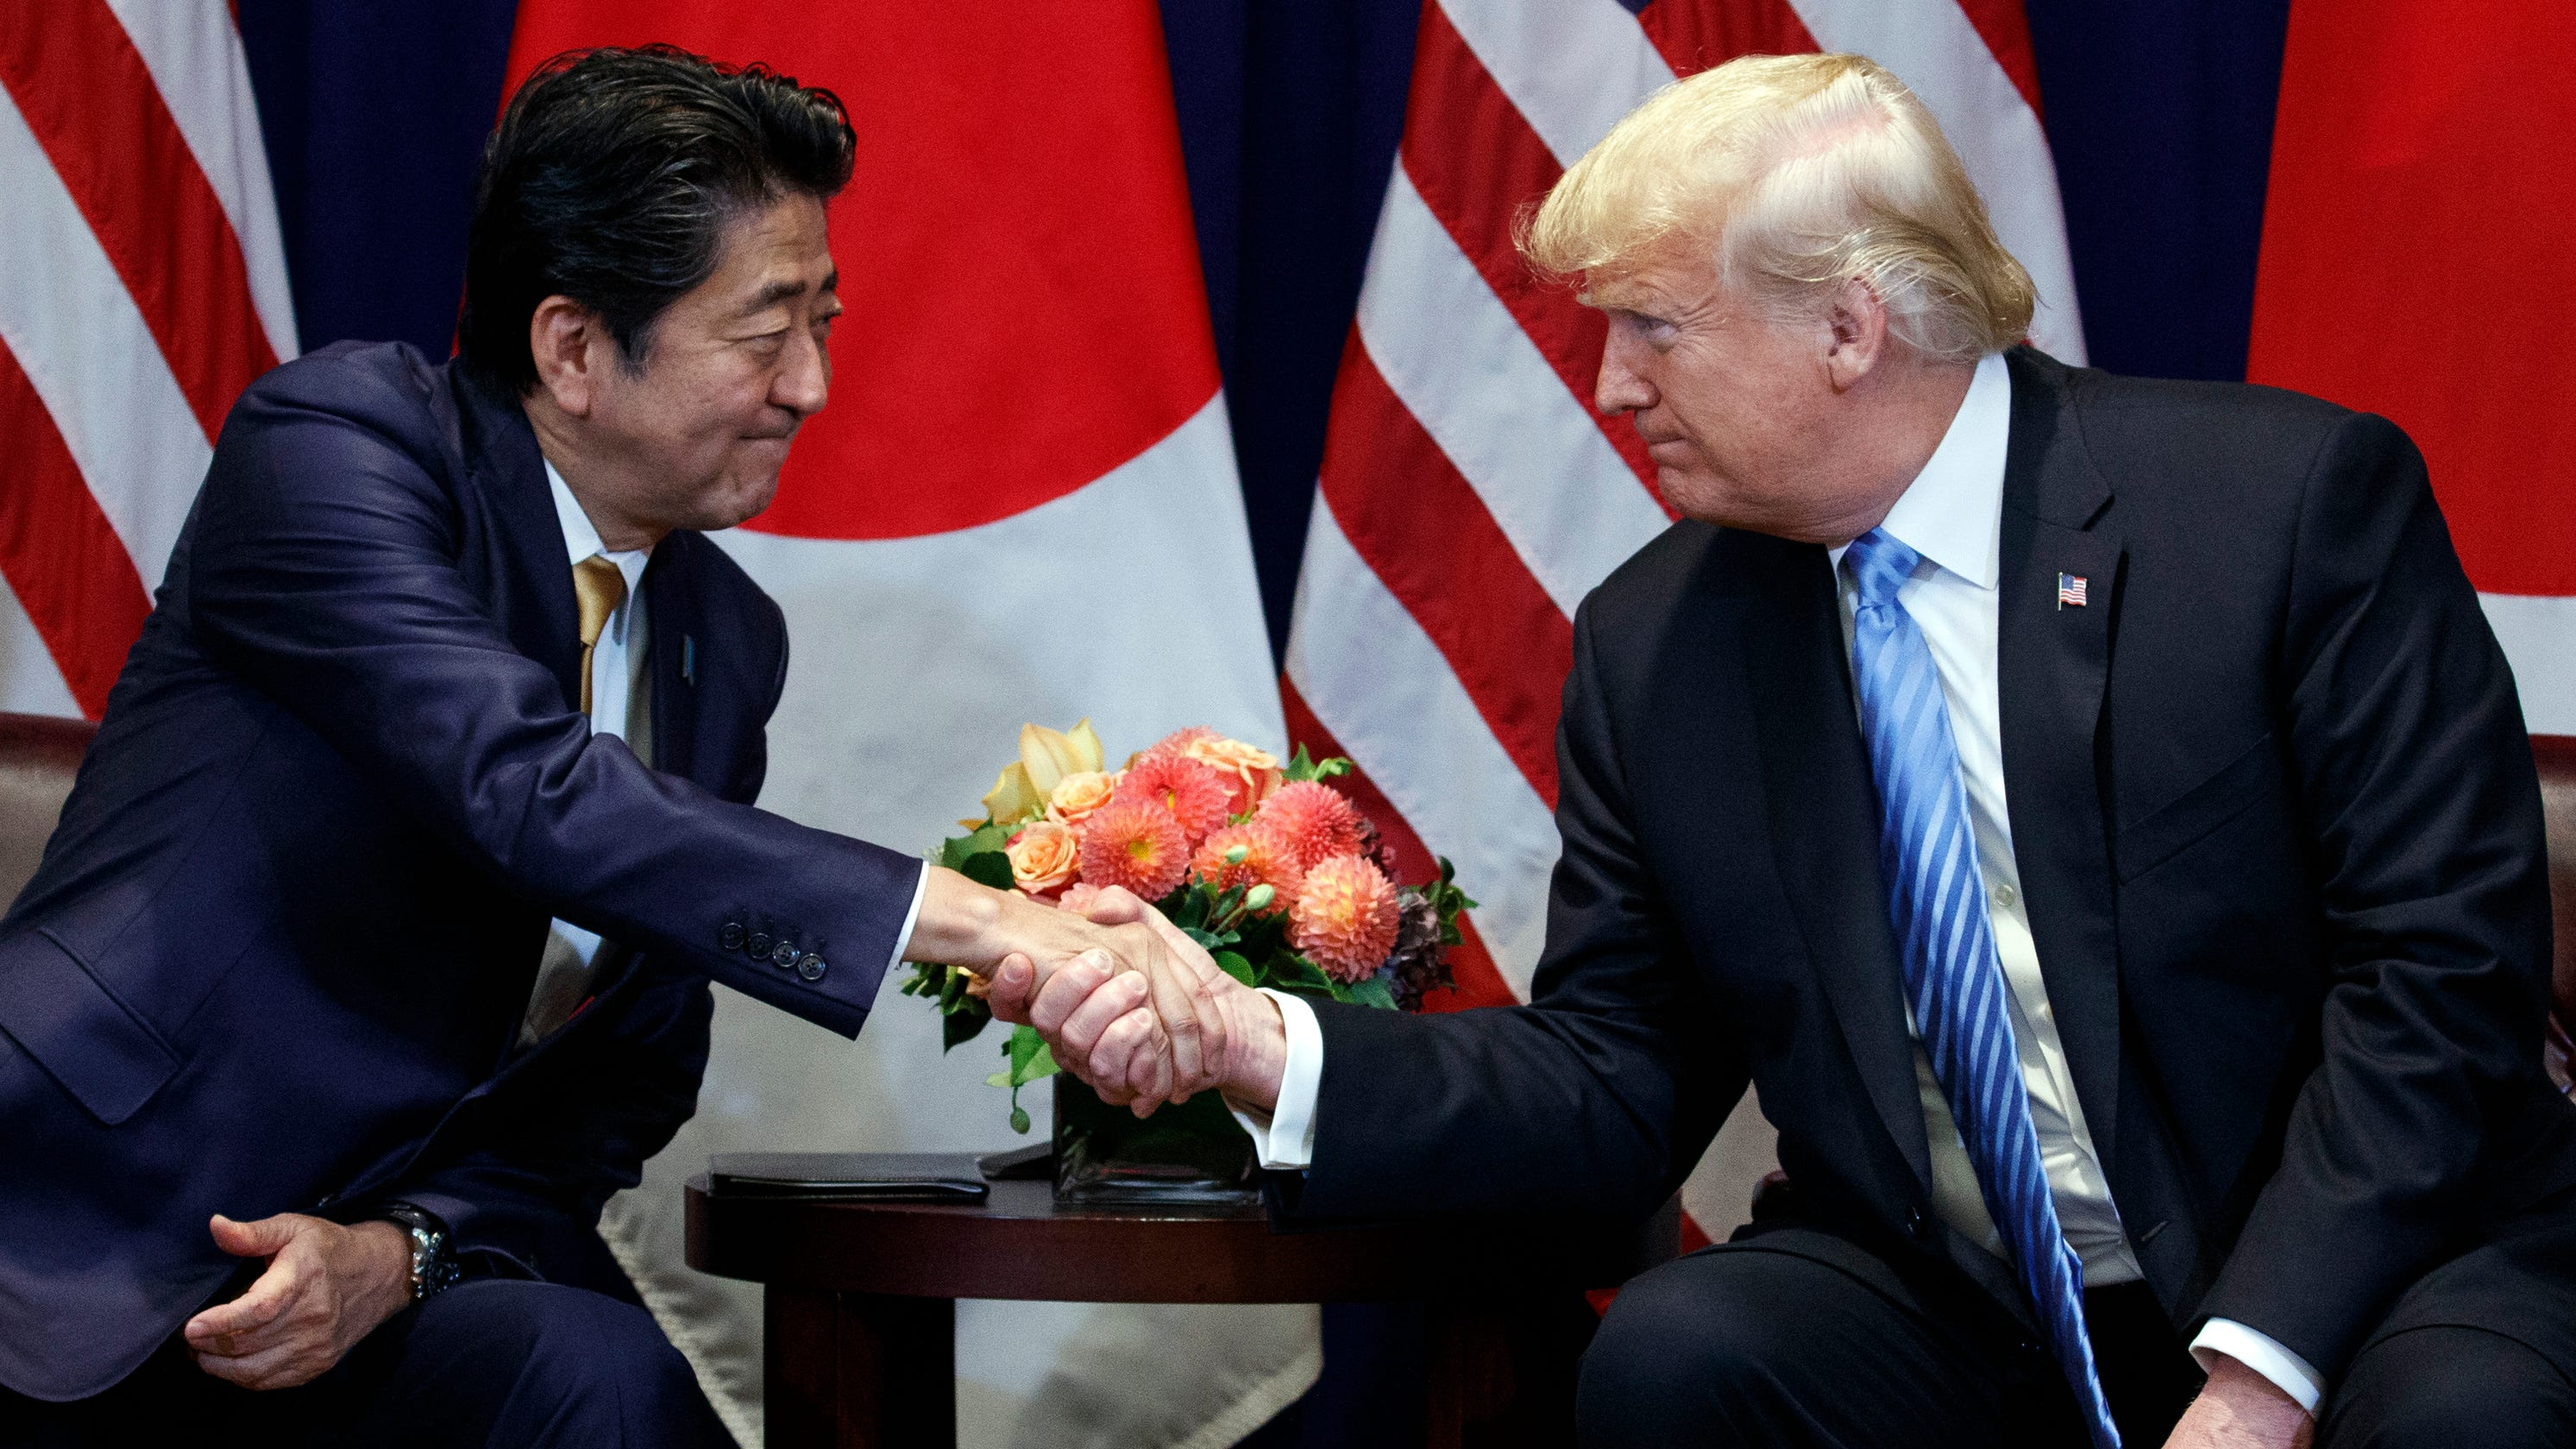 Trump arrives in Japan for state visit, will meet PM Abe, new emperor